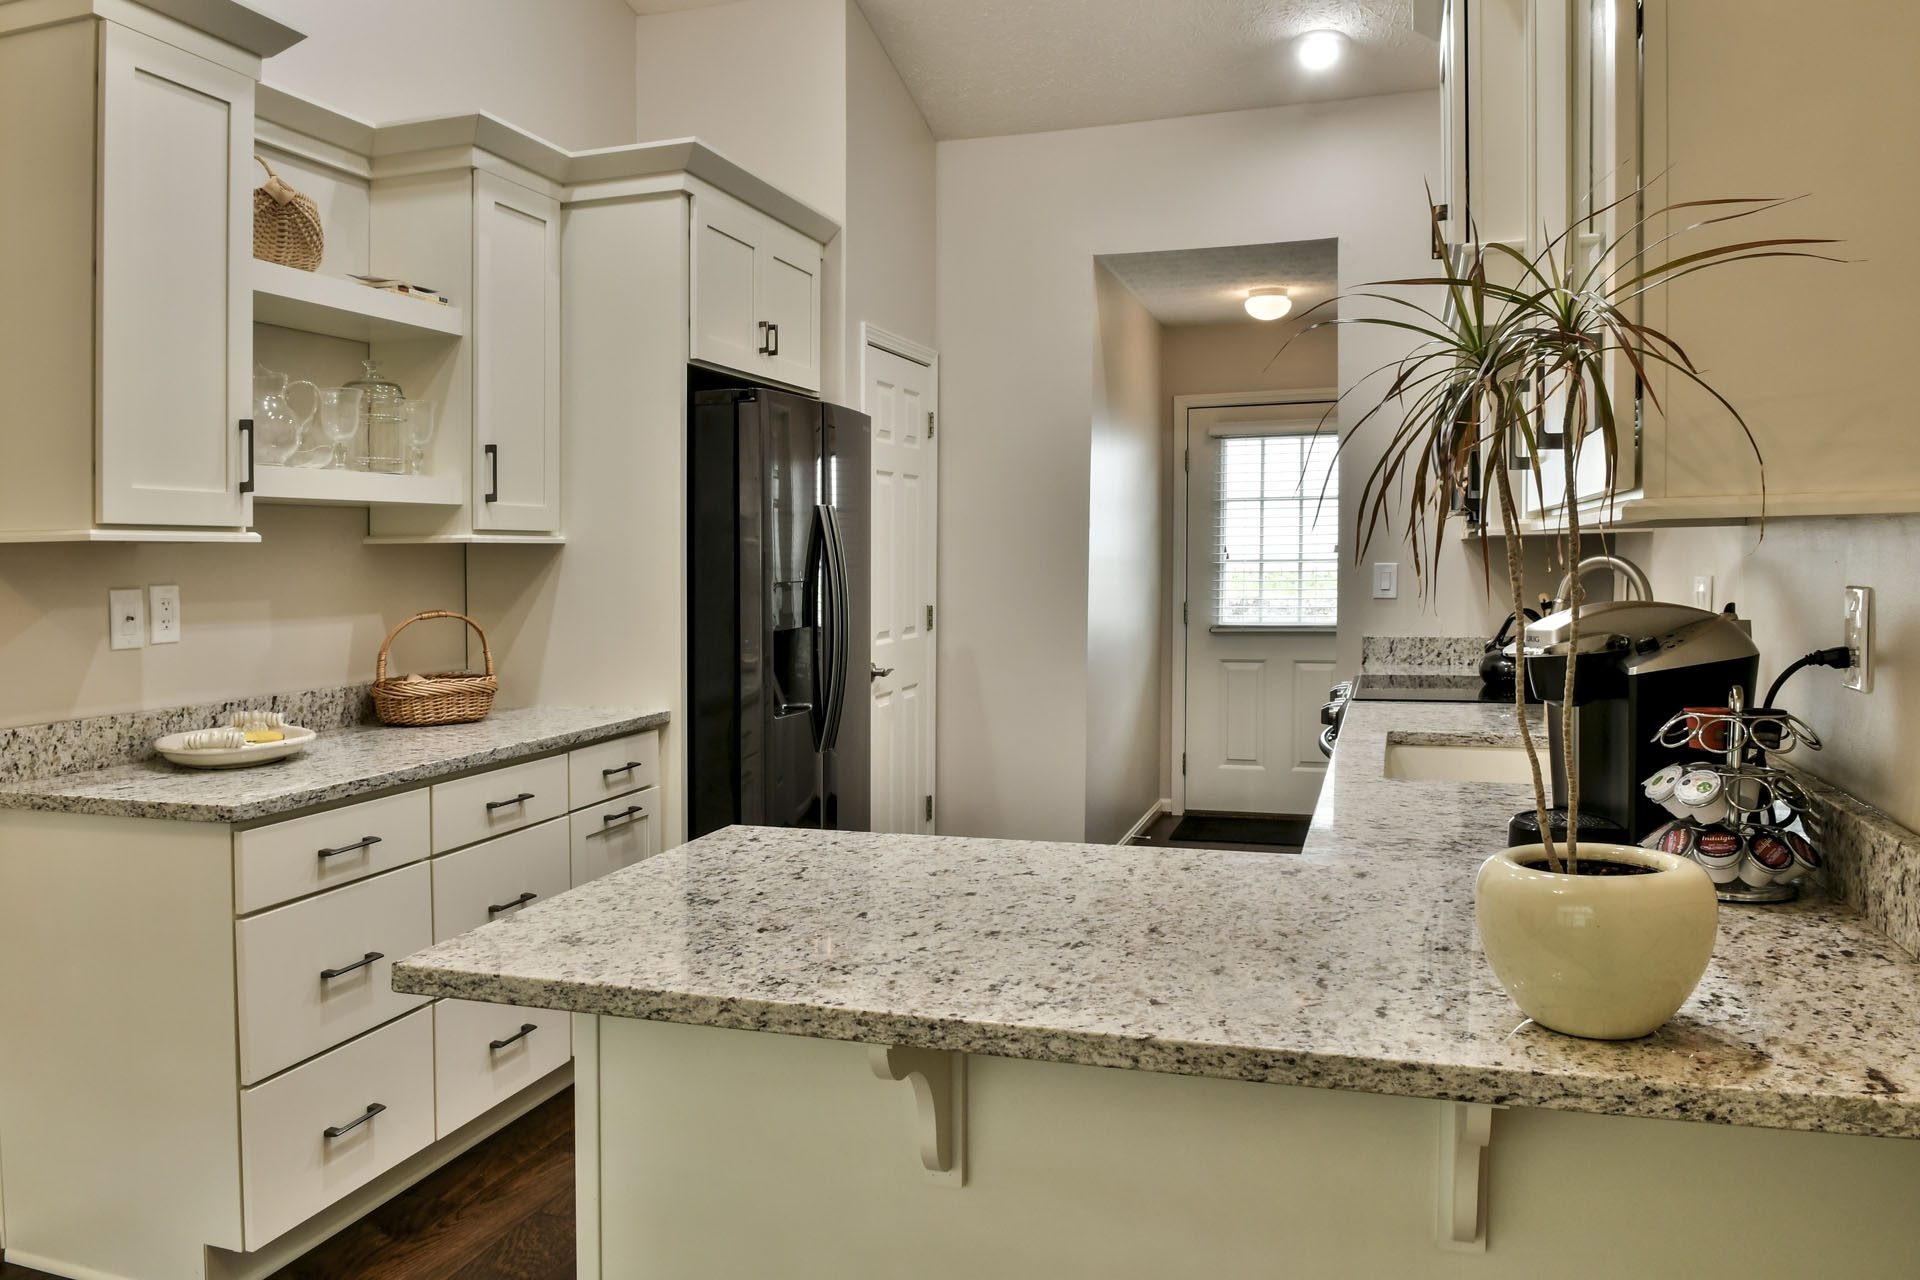 Louisville Interior Designer, Louisville Renovation Designer, Whole Home Renovation, White Kitchen Cabinets, Hardwood Flooring, Black Appliances, Light and Air, Kitchen Lighting, Granite Countertops, Bath Renovation